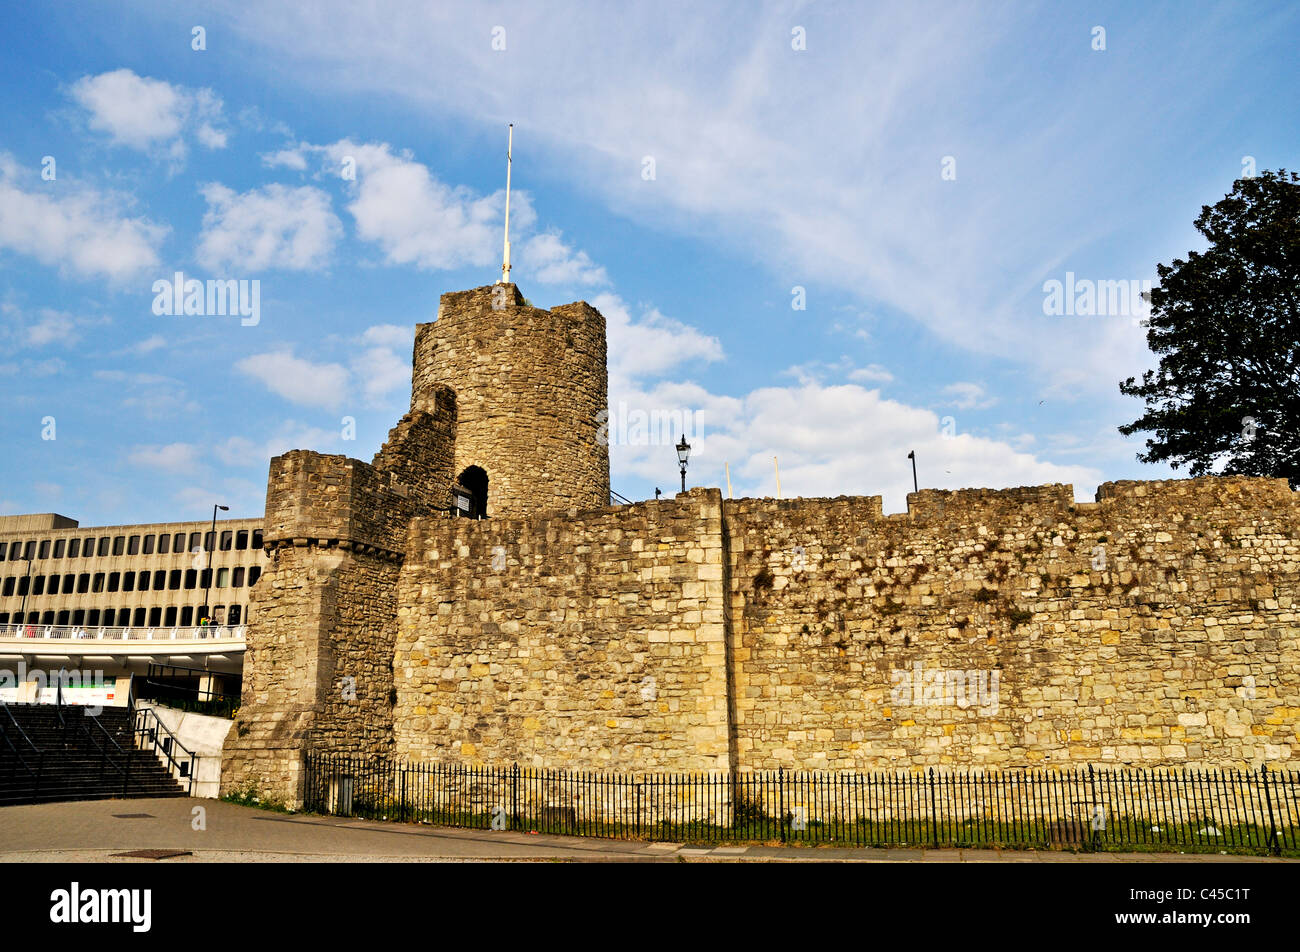 Arundel Tower also given the nickname Windwhistle Tower was built in 1290 as part of the defensive town walls, Southampton - Stock Image